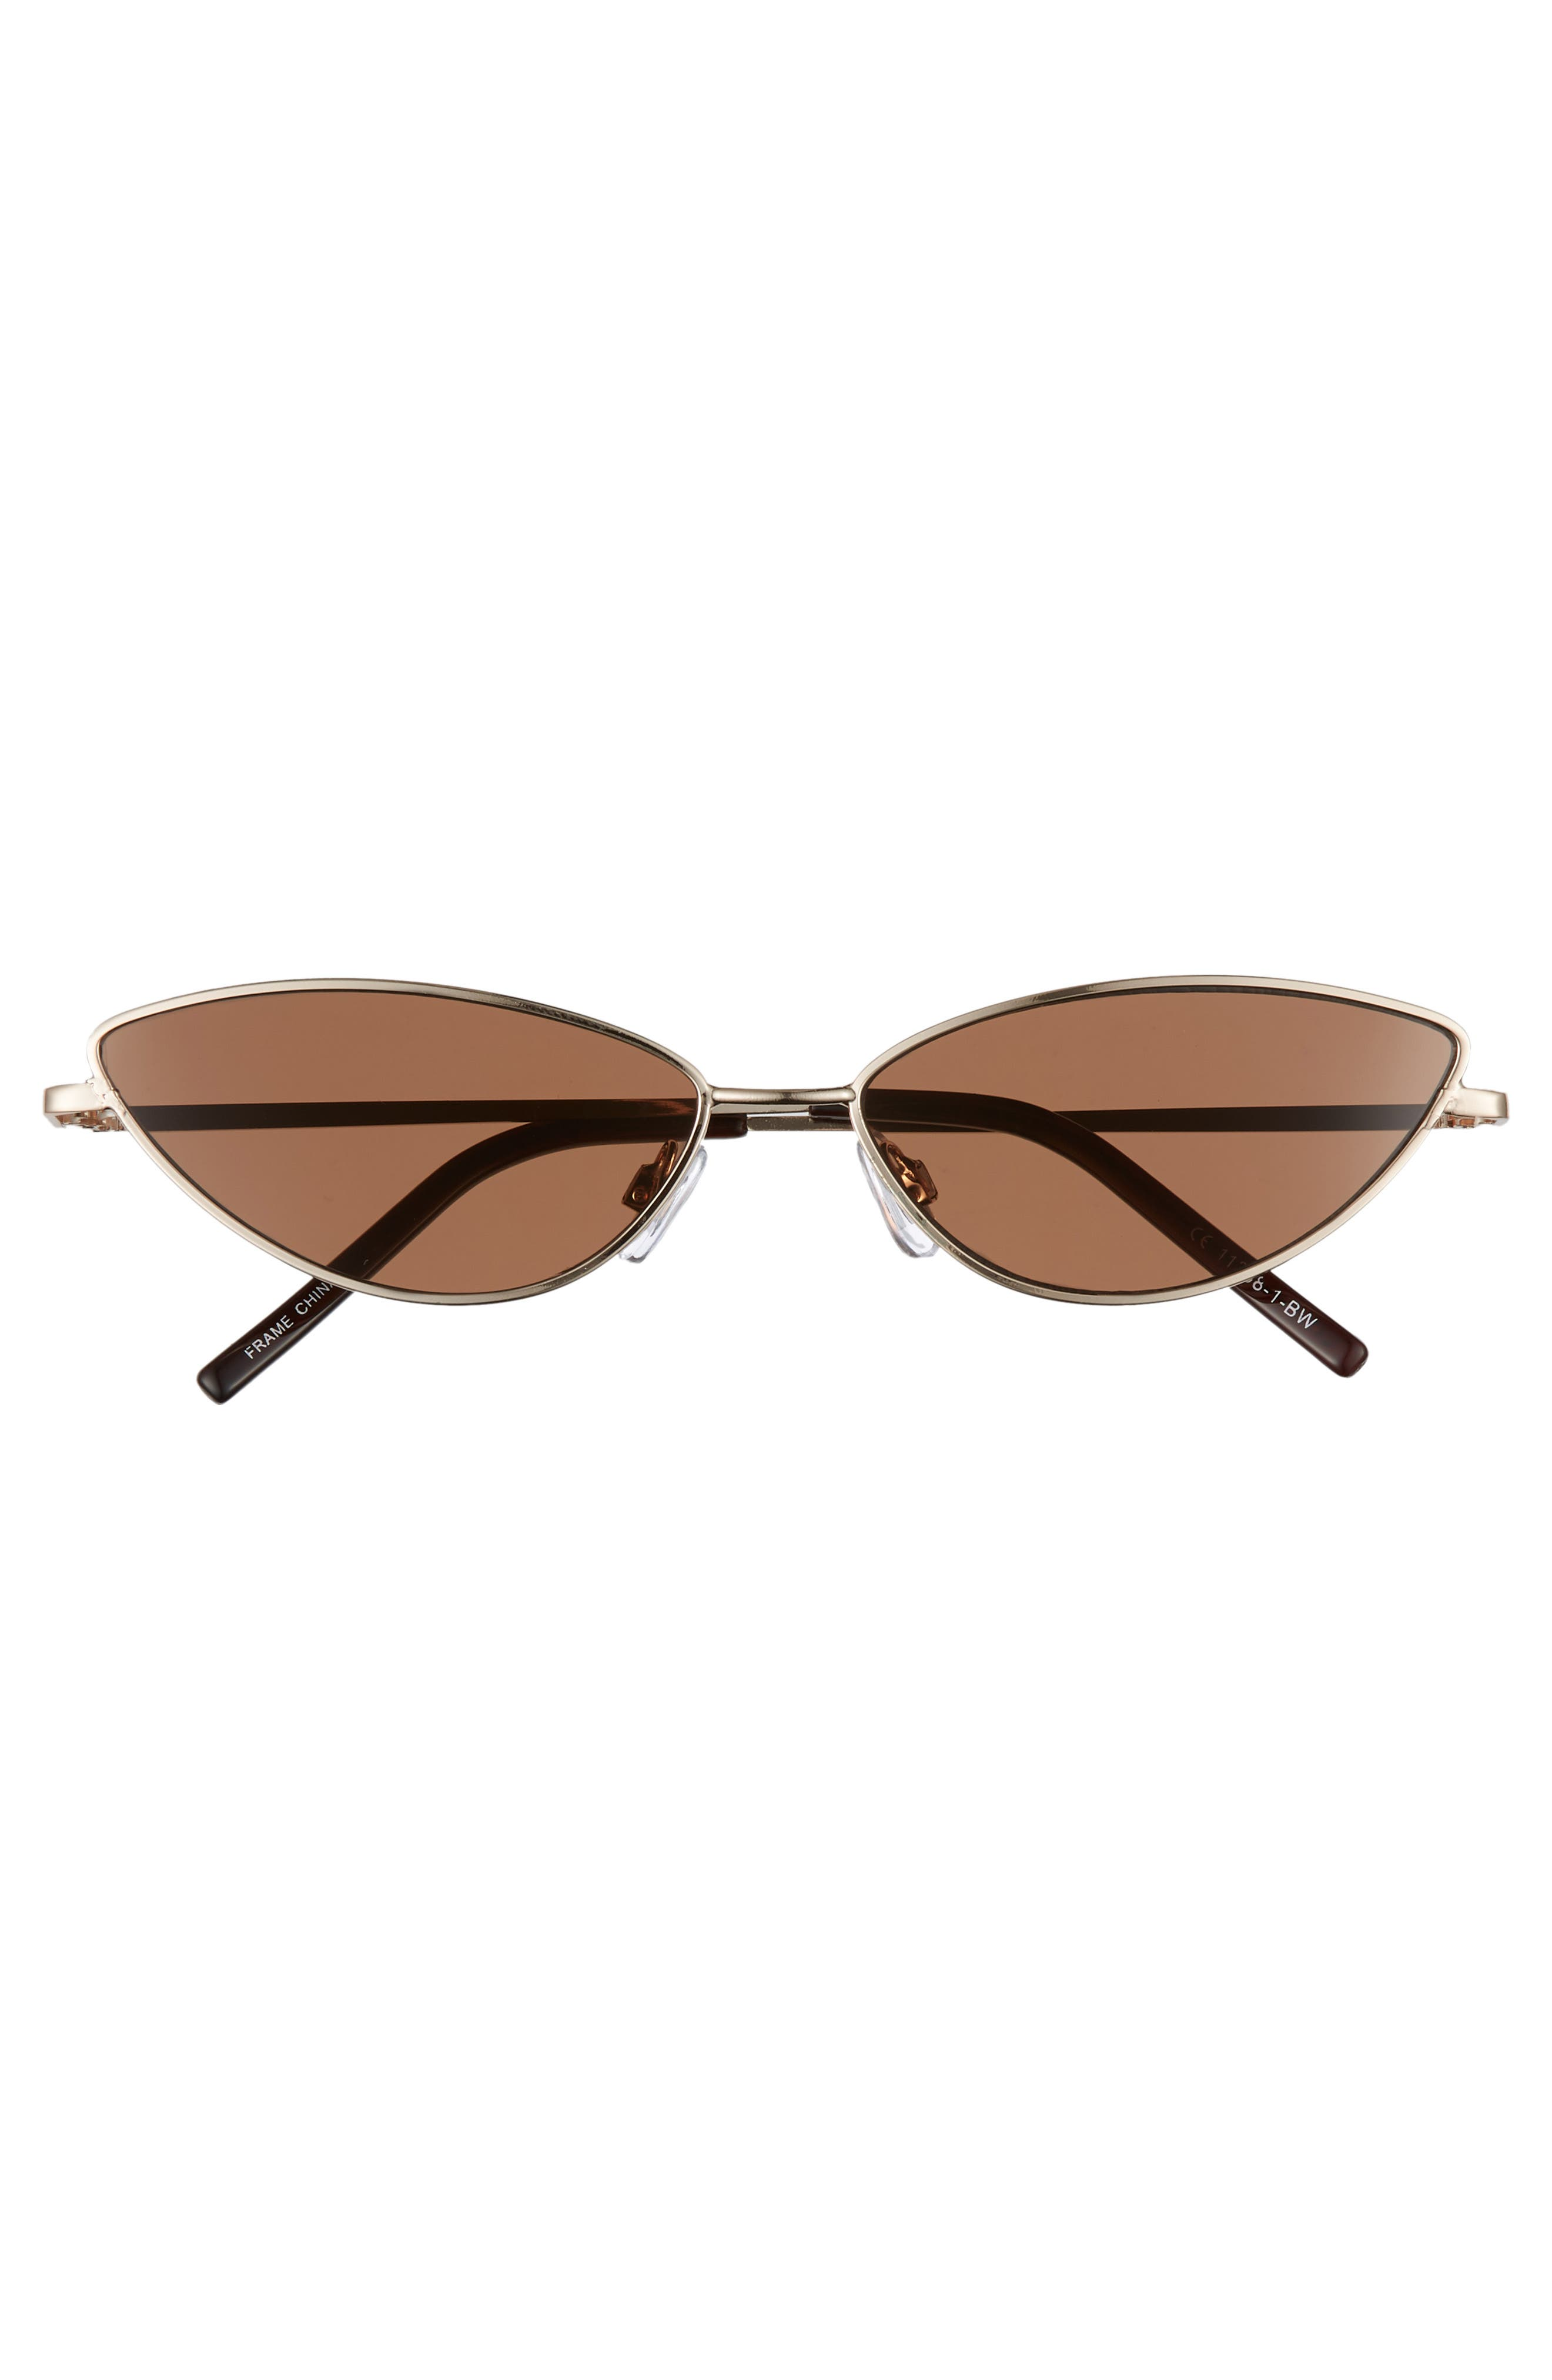 57mm Wide Cat Eye Sunglasses,                             Alternate thumbnail 3, color,                             GOLD/ BROWN